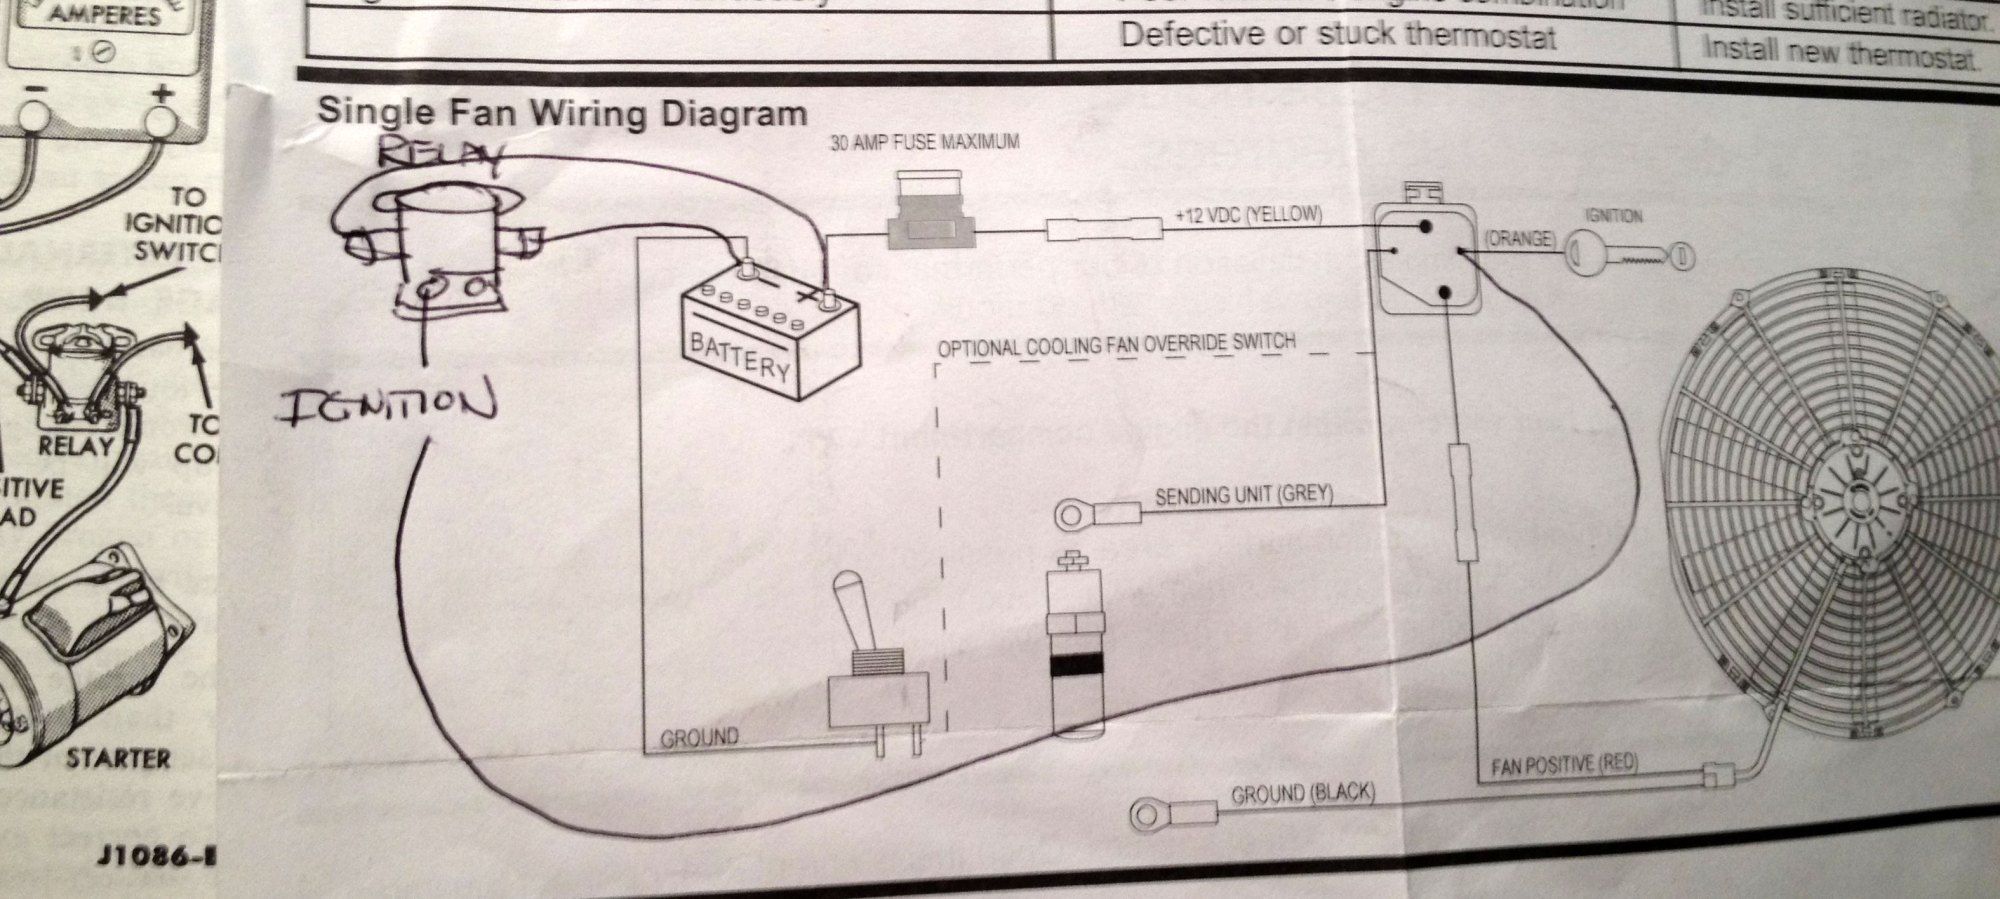 hight resolution of spal relay wiring diagram spal get free image about wiring diagram 1989 toyota 22re vacuum diagram http wwwpic2flycom 1989toyota